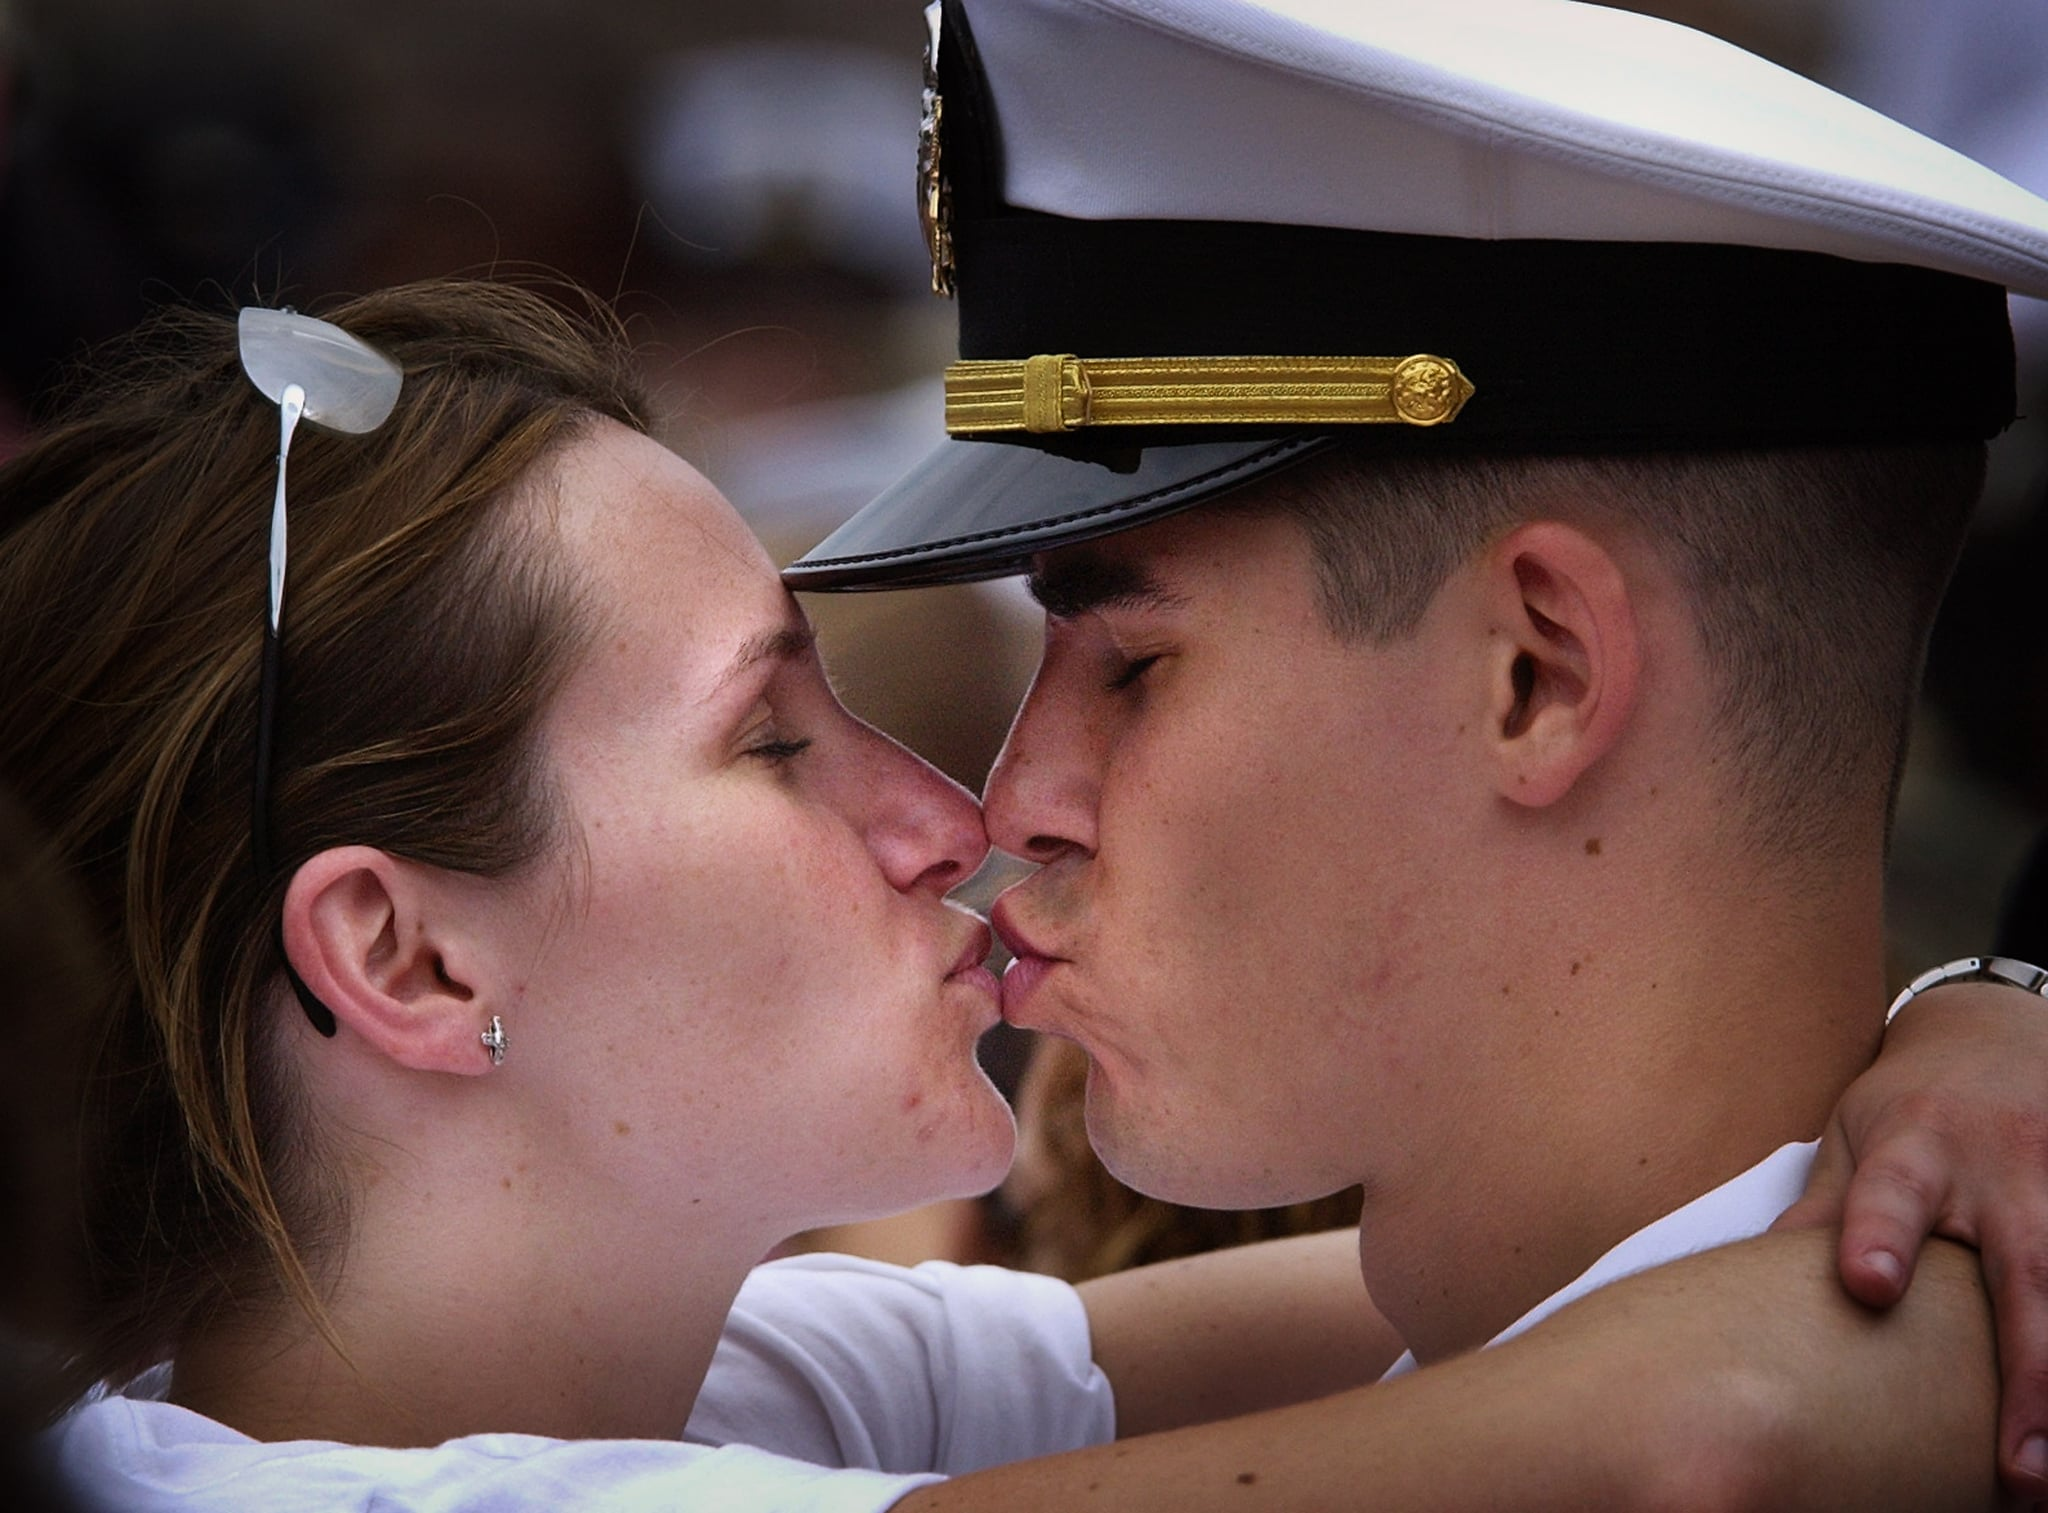 Erin Doherty gives boyfriend Warren Van Allen a kiss pier-side after the US Navy aircraft carrier USS Theodore Roosevelt returned home to Norfolk Naval Station May 29, 2003.